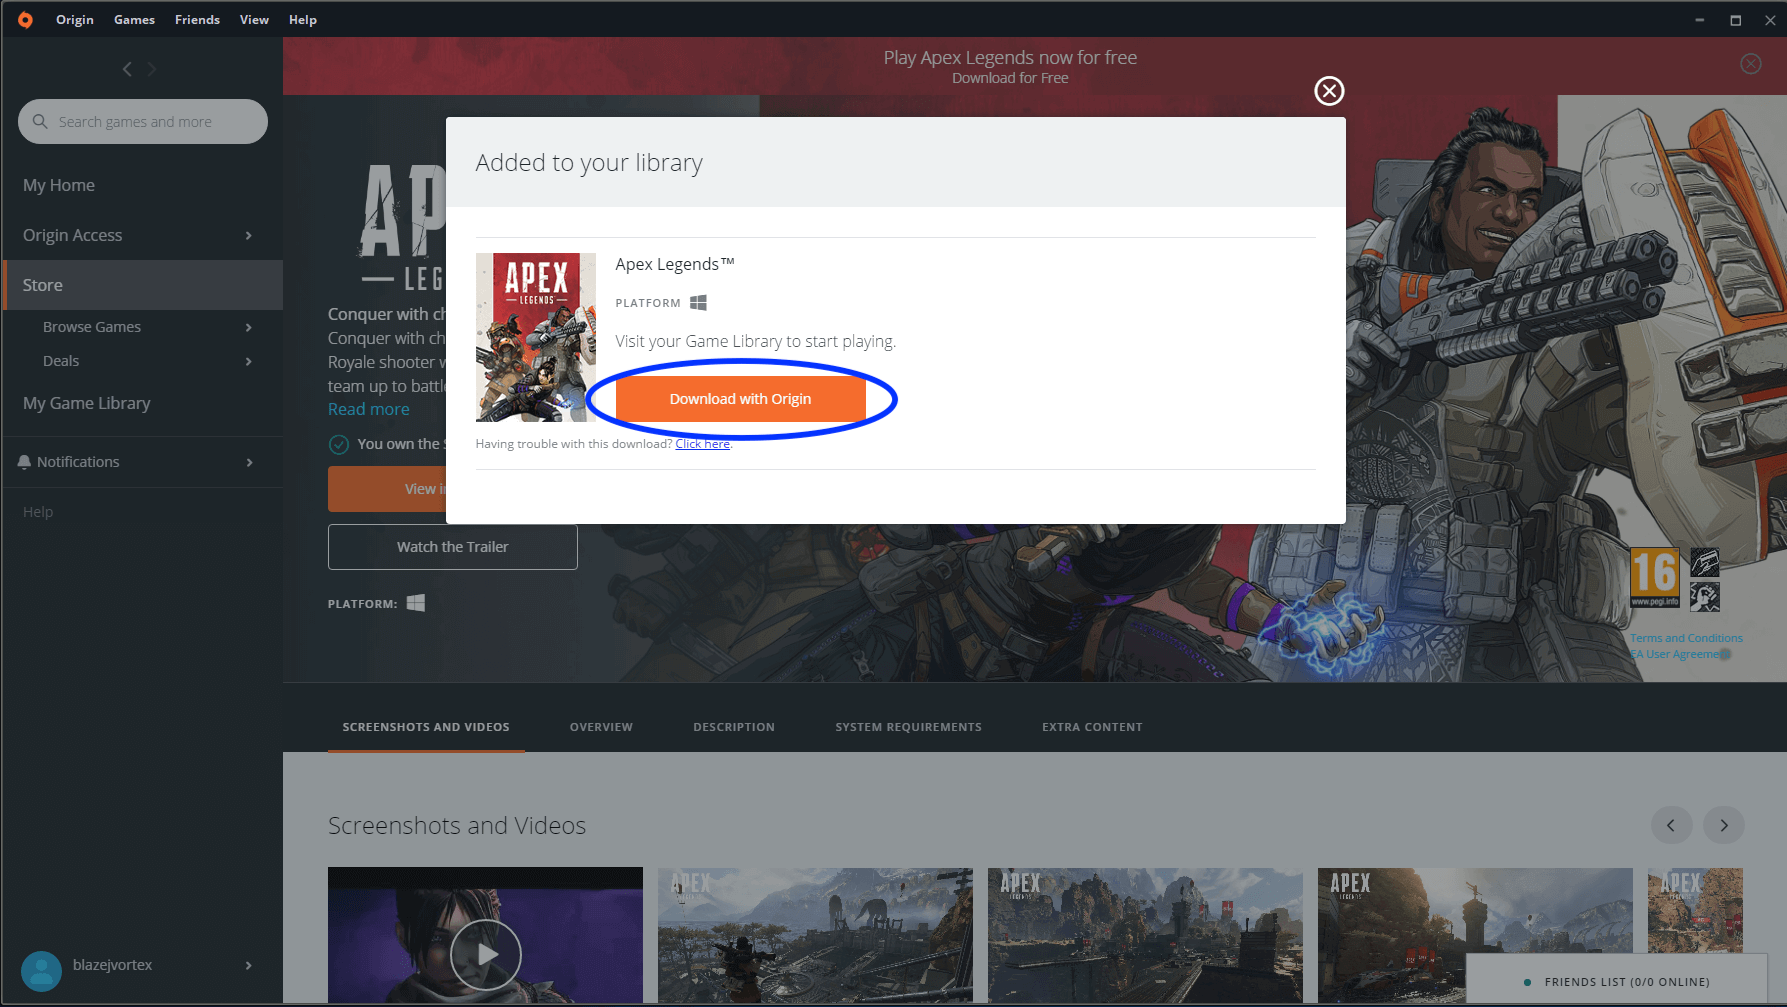 Adding Apex Legends to library